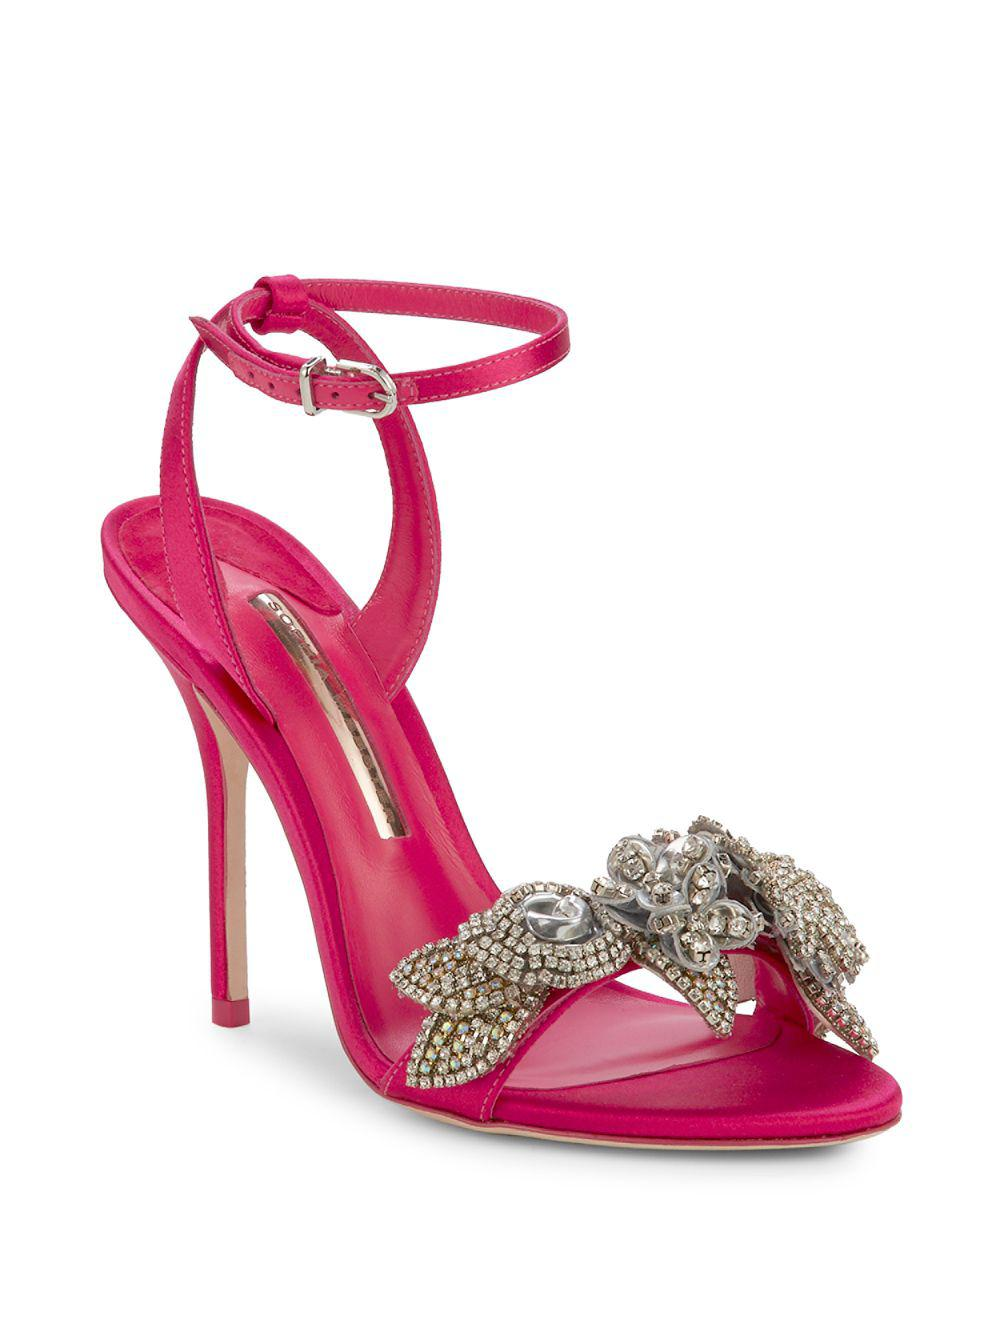 7b0261e4f16 Sophia Webster Lilico Crystal-embellished Leather Sandals in Pink - Lyst